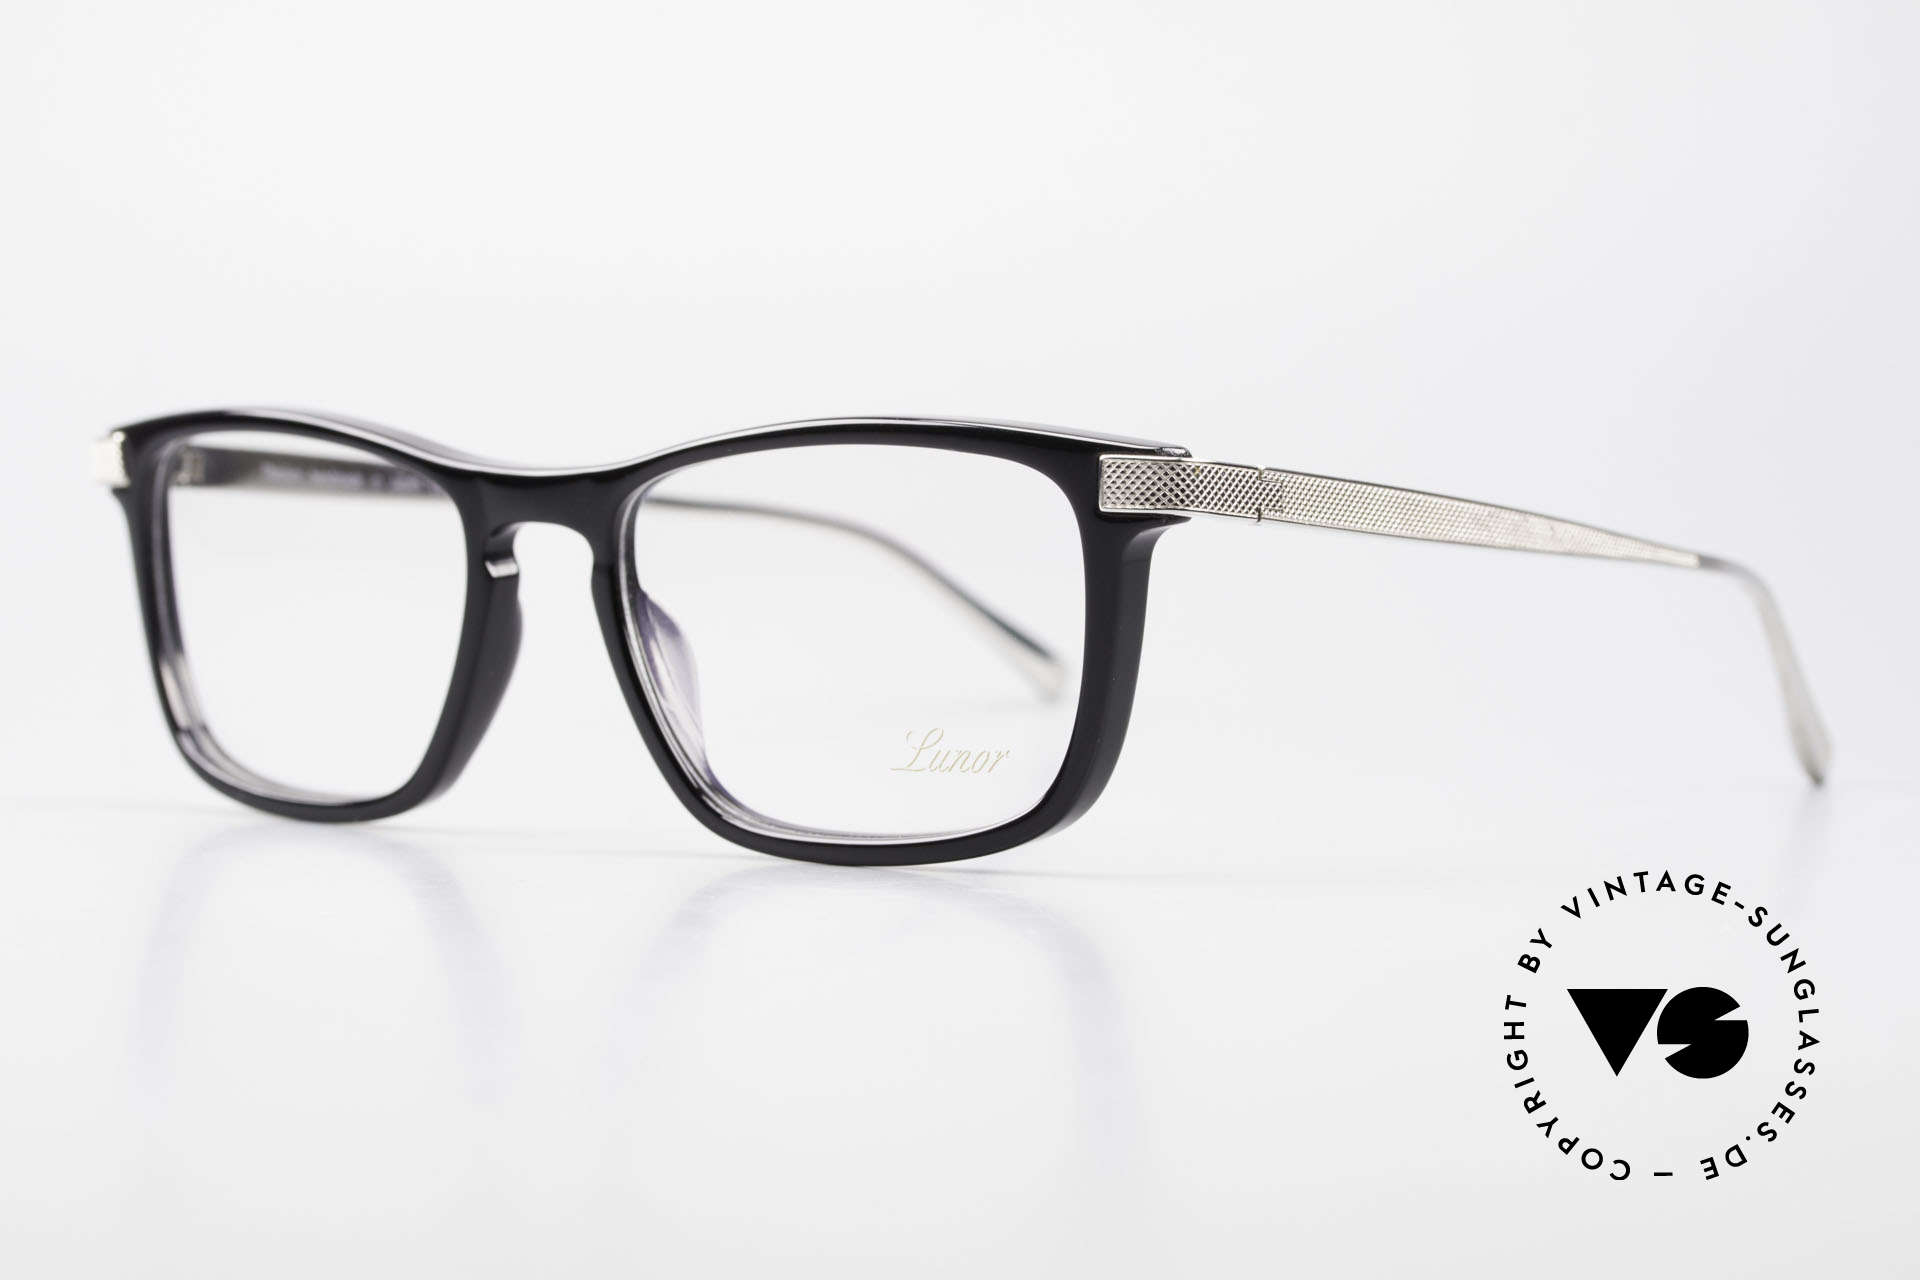 """Lunor Imperial Anatomic Vintage Titanium Frame 2012, Lunor: shortcut for French """"Lunette d'Or"""" (gold glasses), Made for Men and Women"""